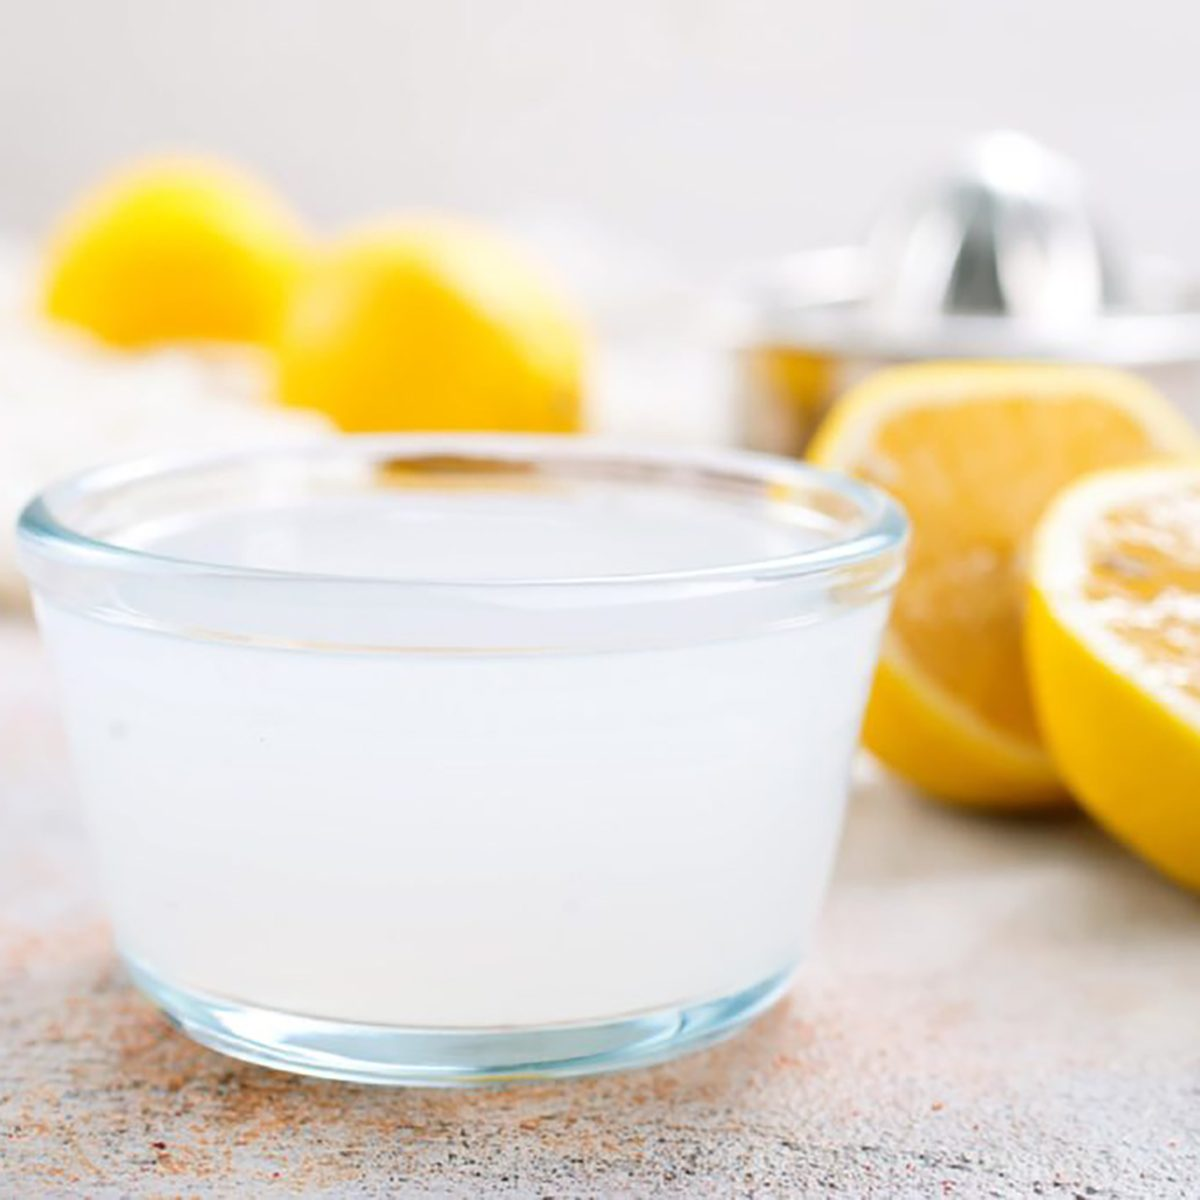 lemon juice, best natural cleaning products